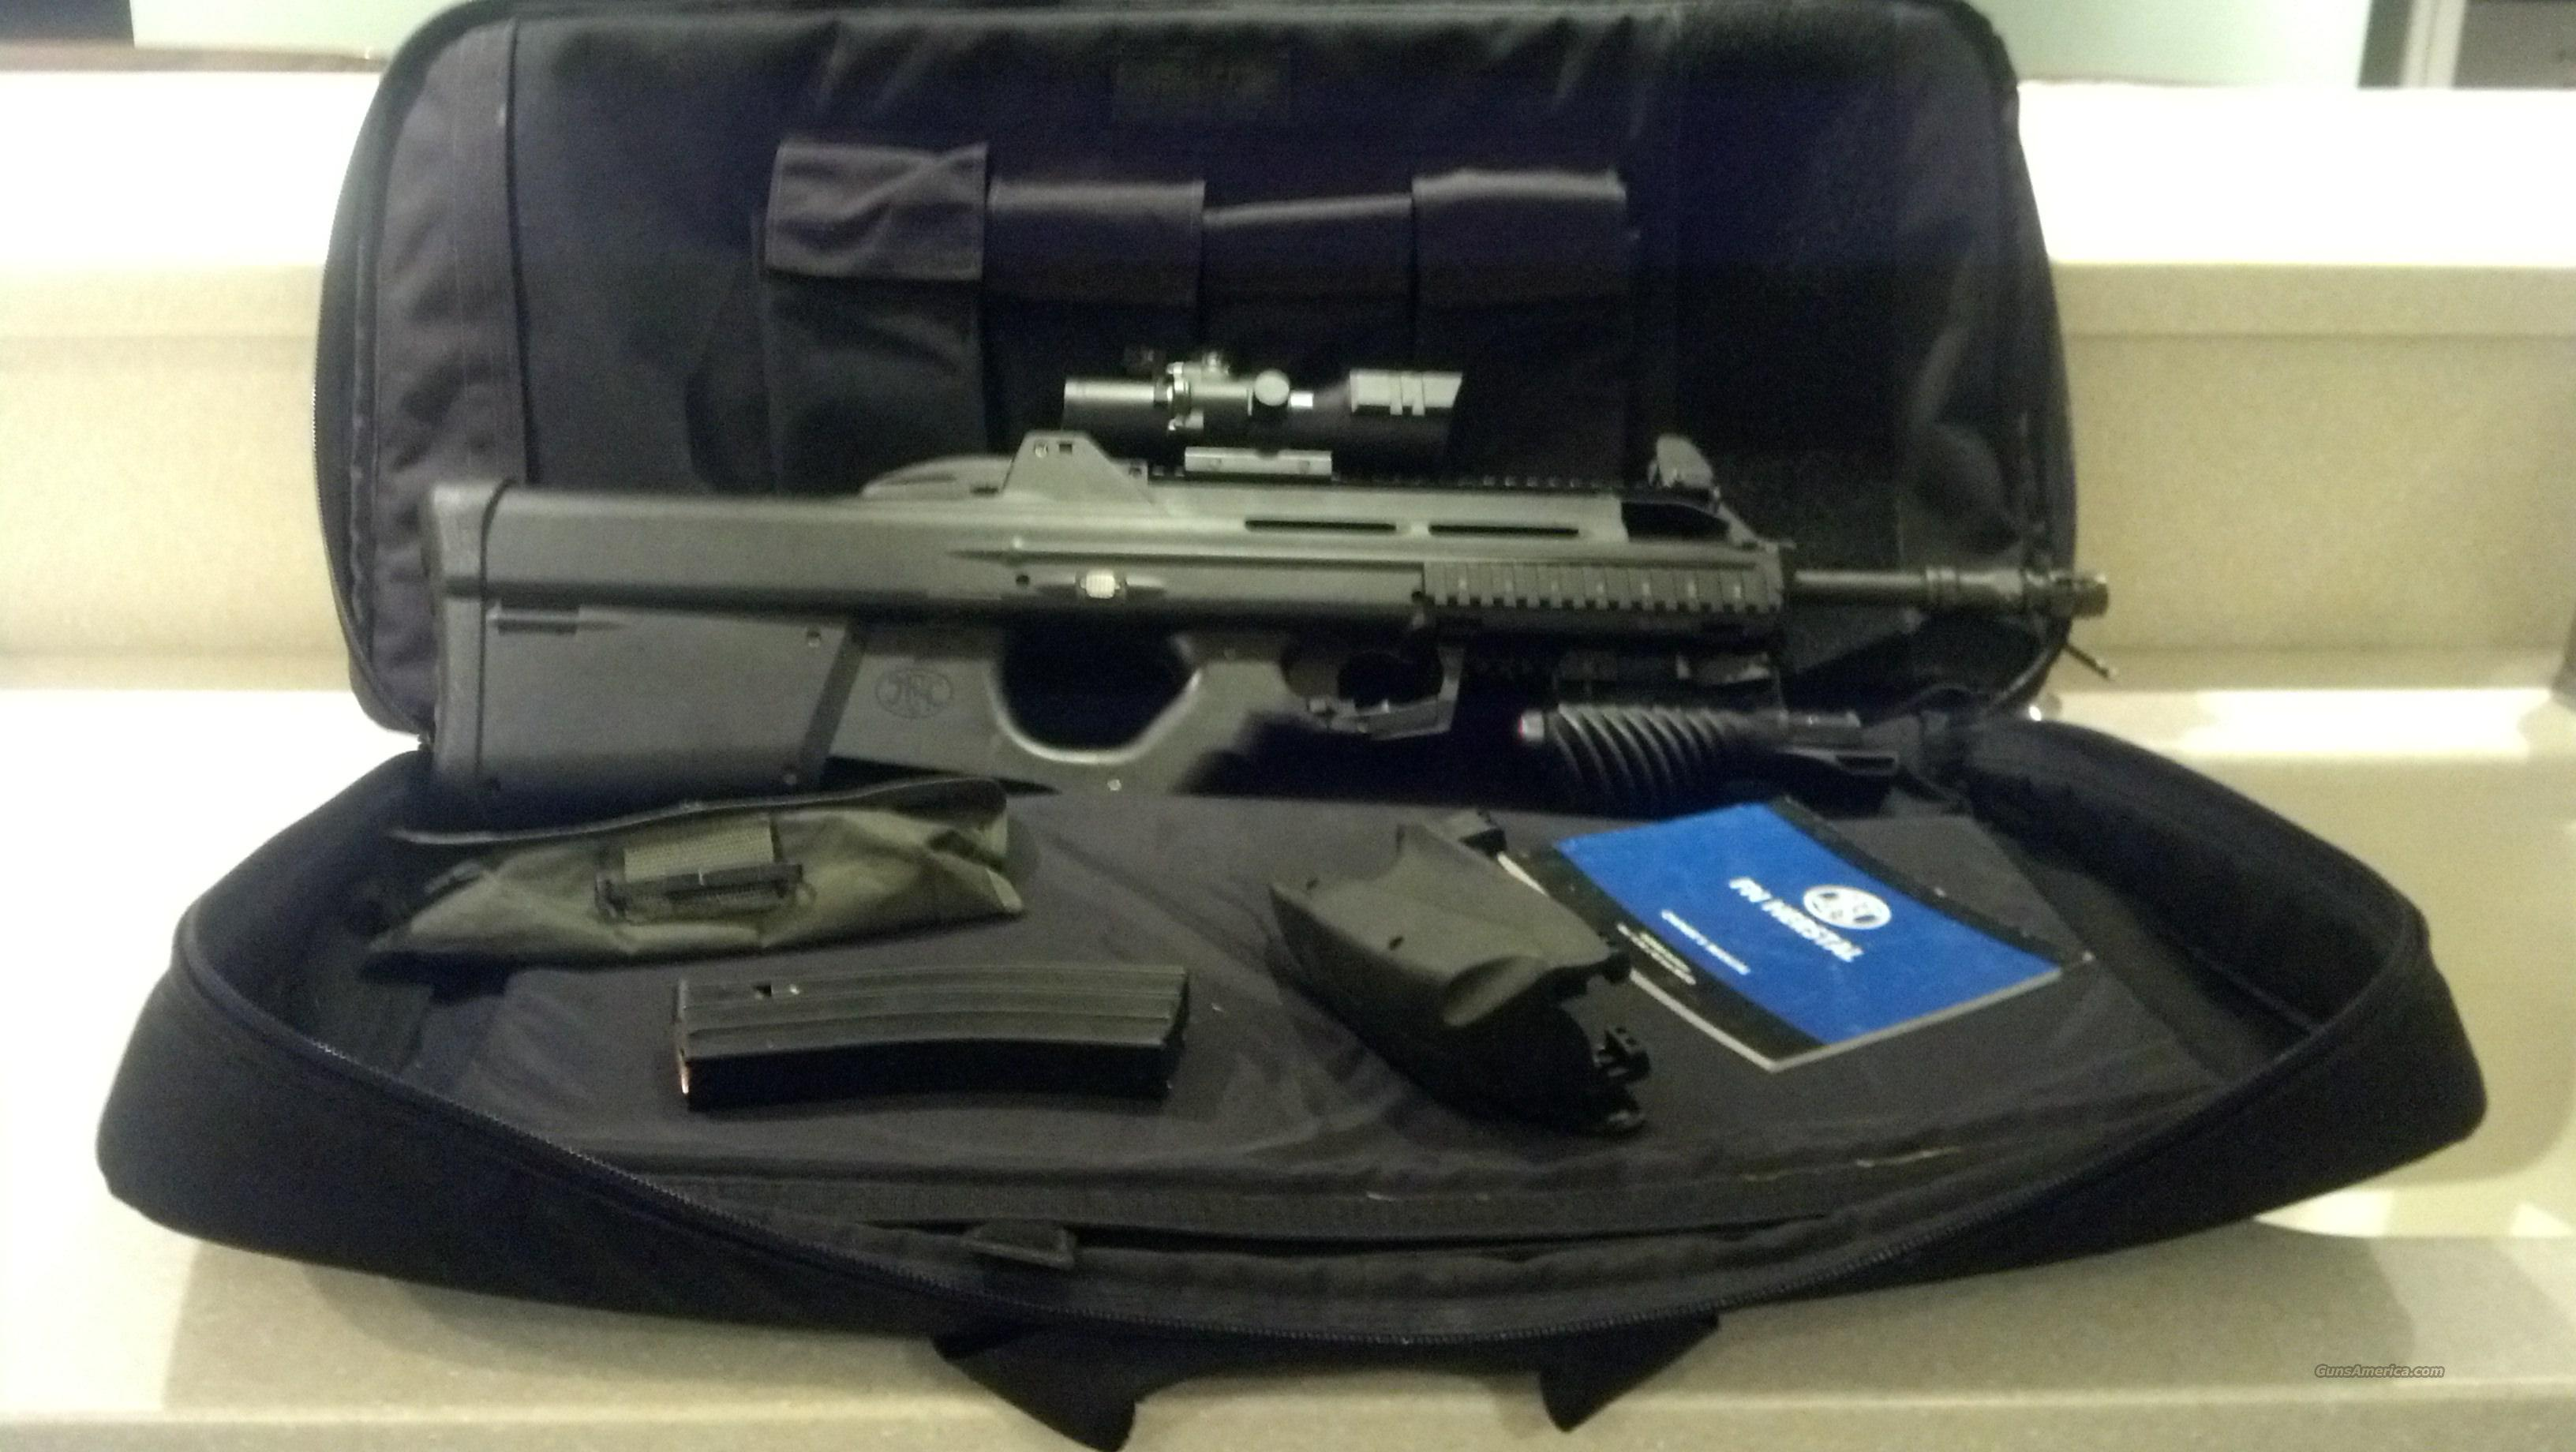 FNH FS2000 Tactical  Guns > Rifles > FNH - Fabrique Nationale (FN) Rifles > Semi-auto > Other